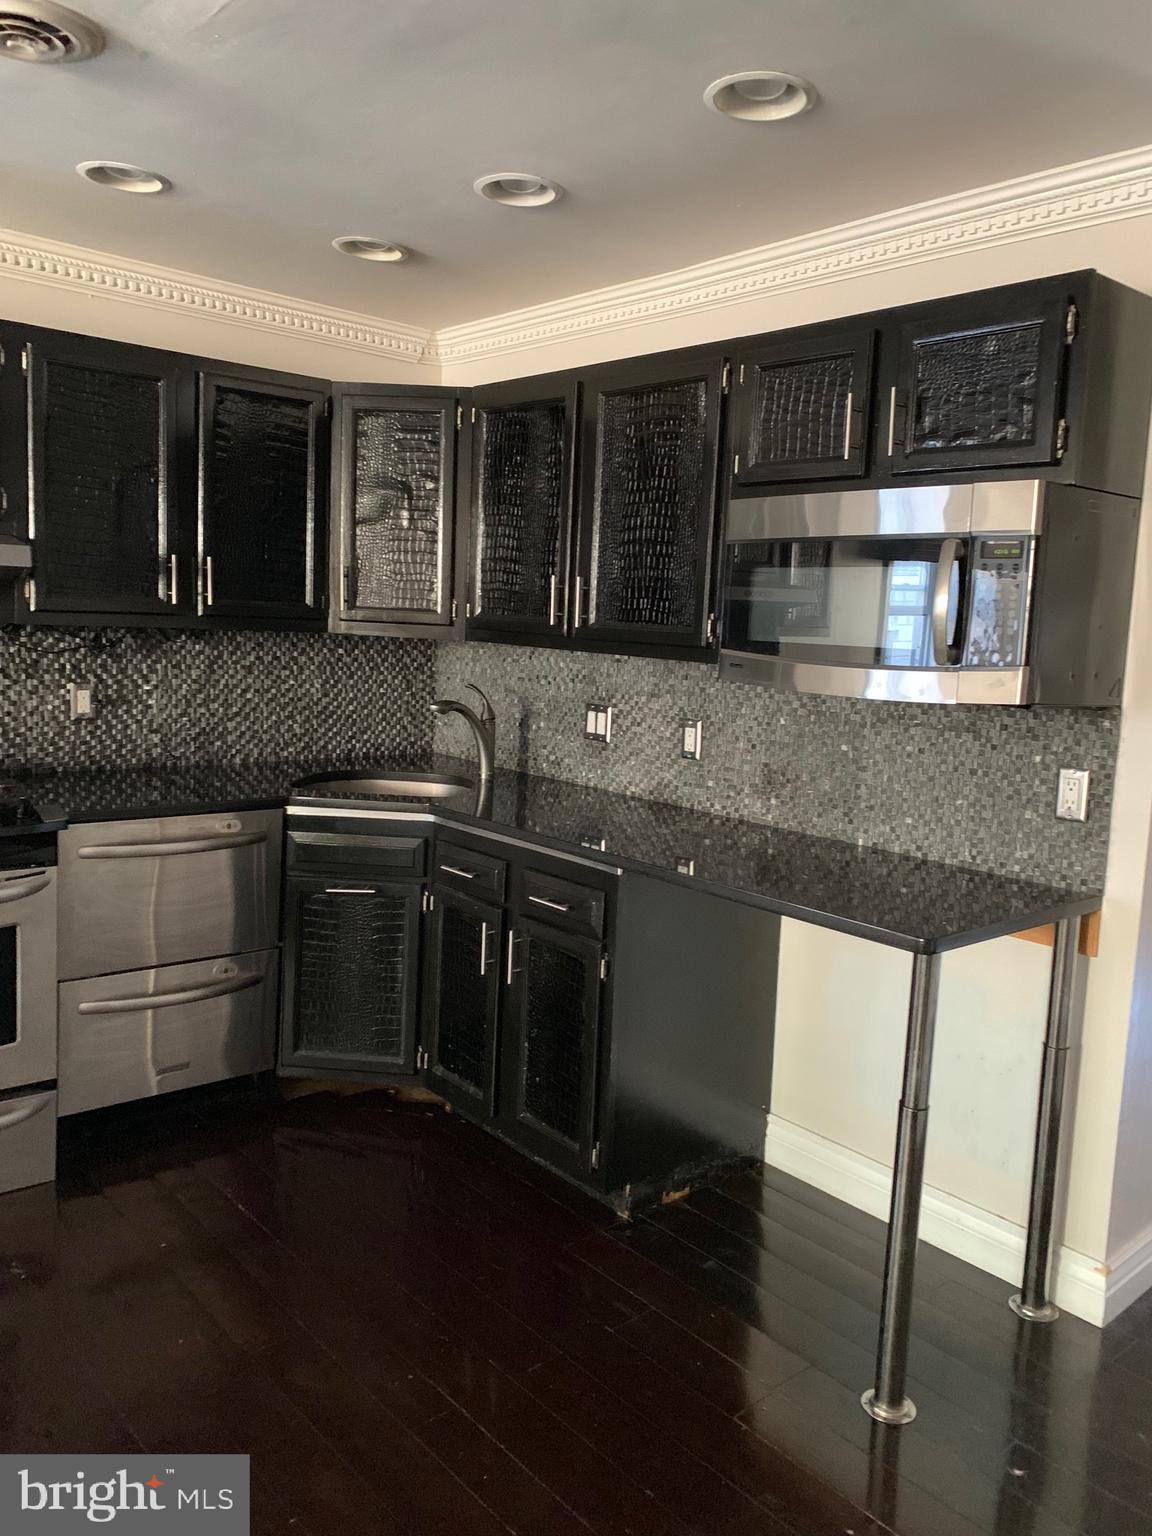 Great space and value in this entire second floor light filled 1 bedroom, 1 bath apartment. Open living and dining area, huge bedroom and enormous all tile bath. Just off South 15th street and minutes from Passyunk Square. Awesome value rent includes all utilities except internet and cable.